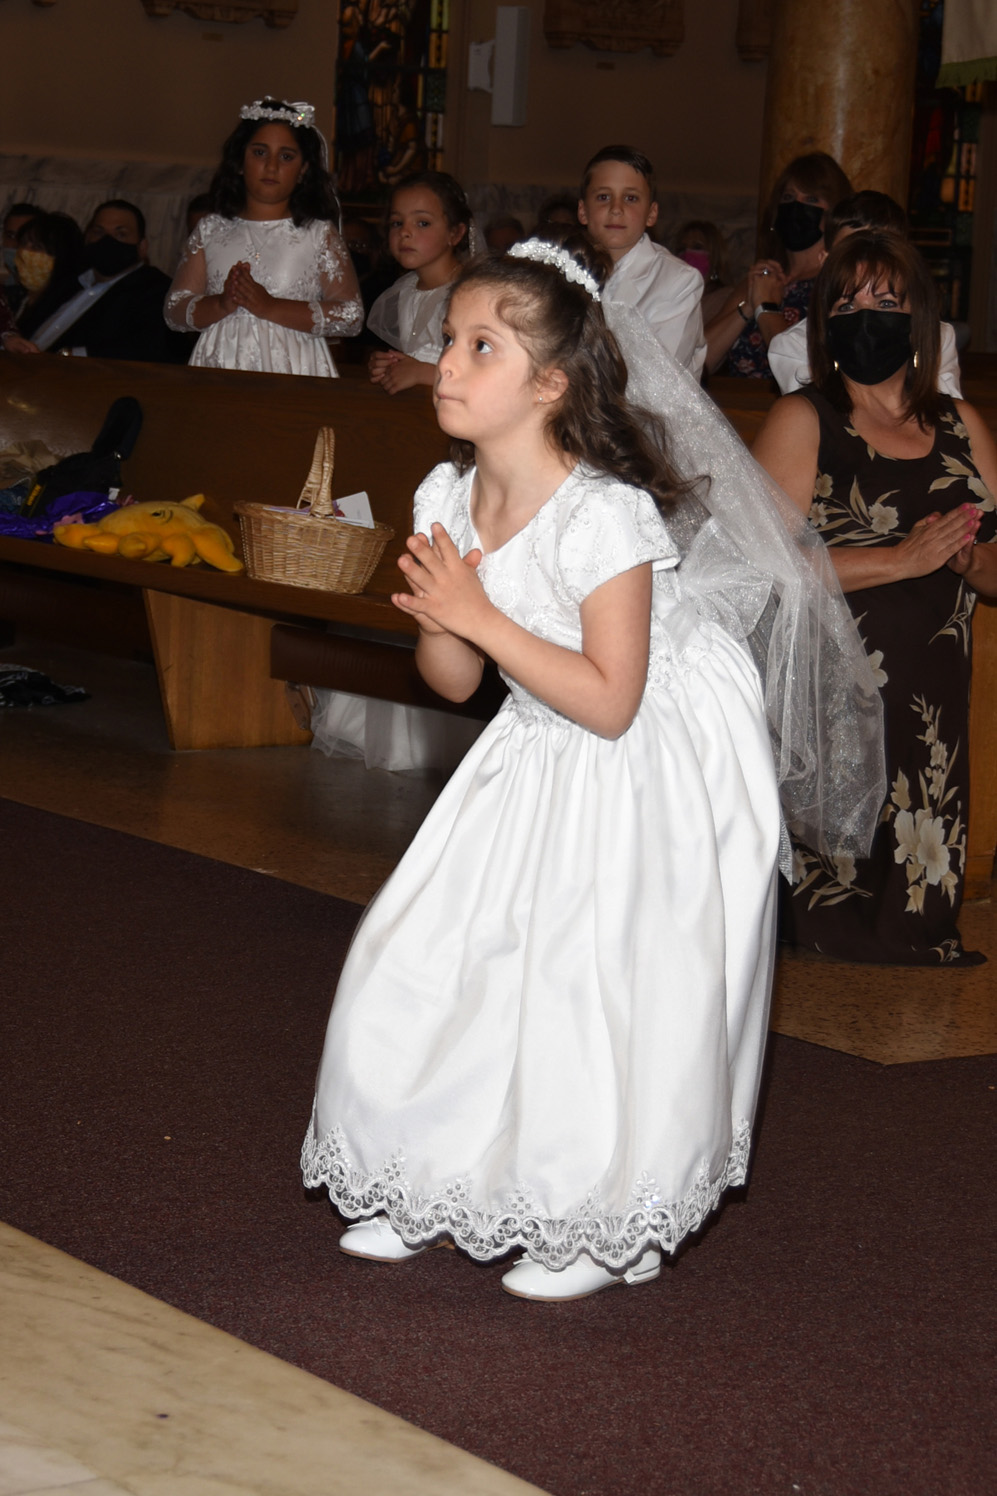 FIRST-COMMUNION-MAY-2-2021-1001001238